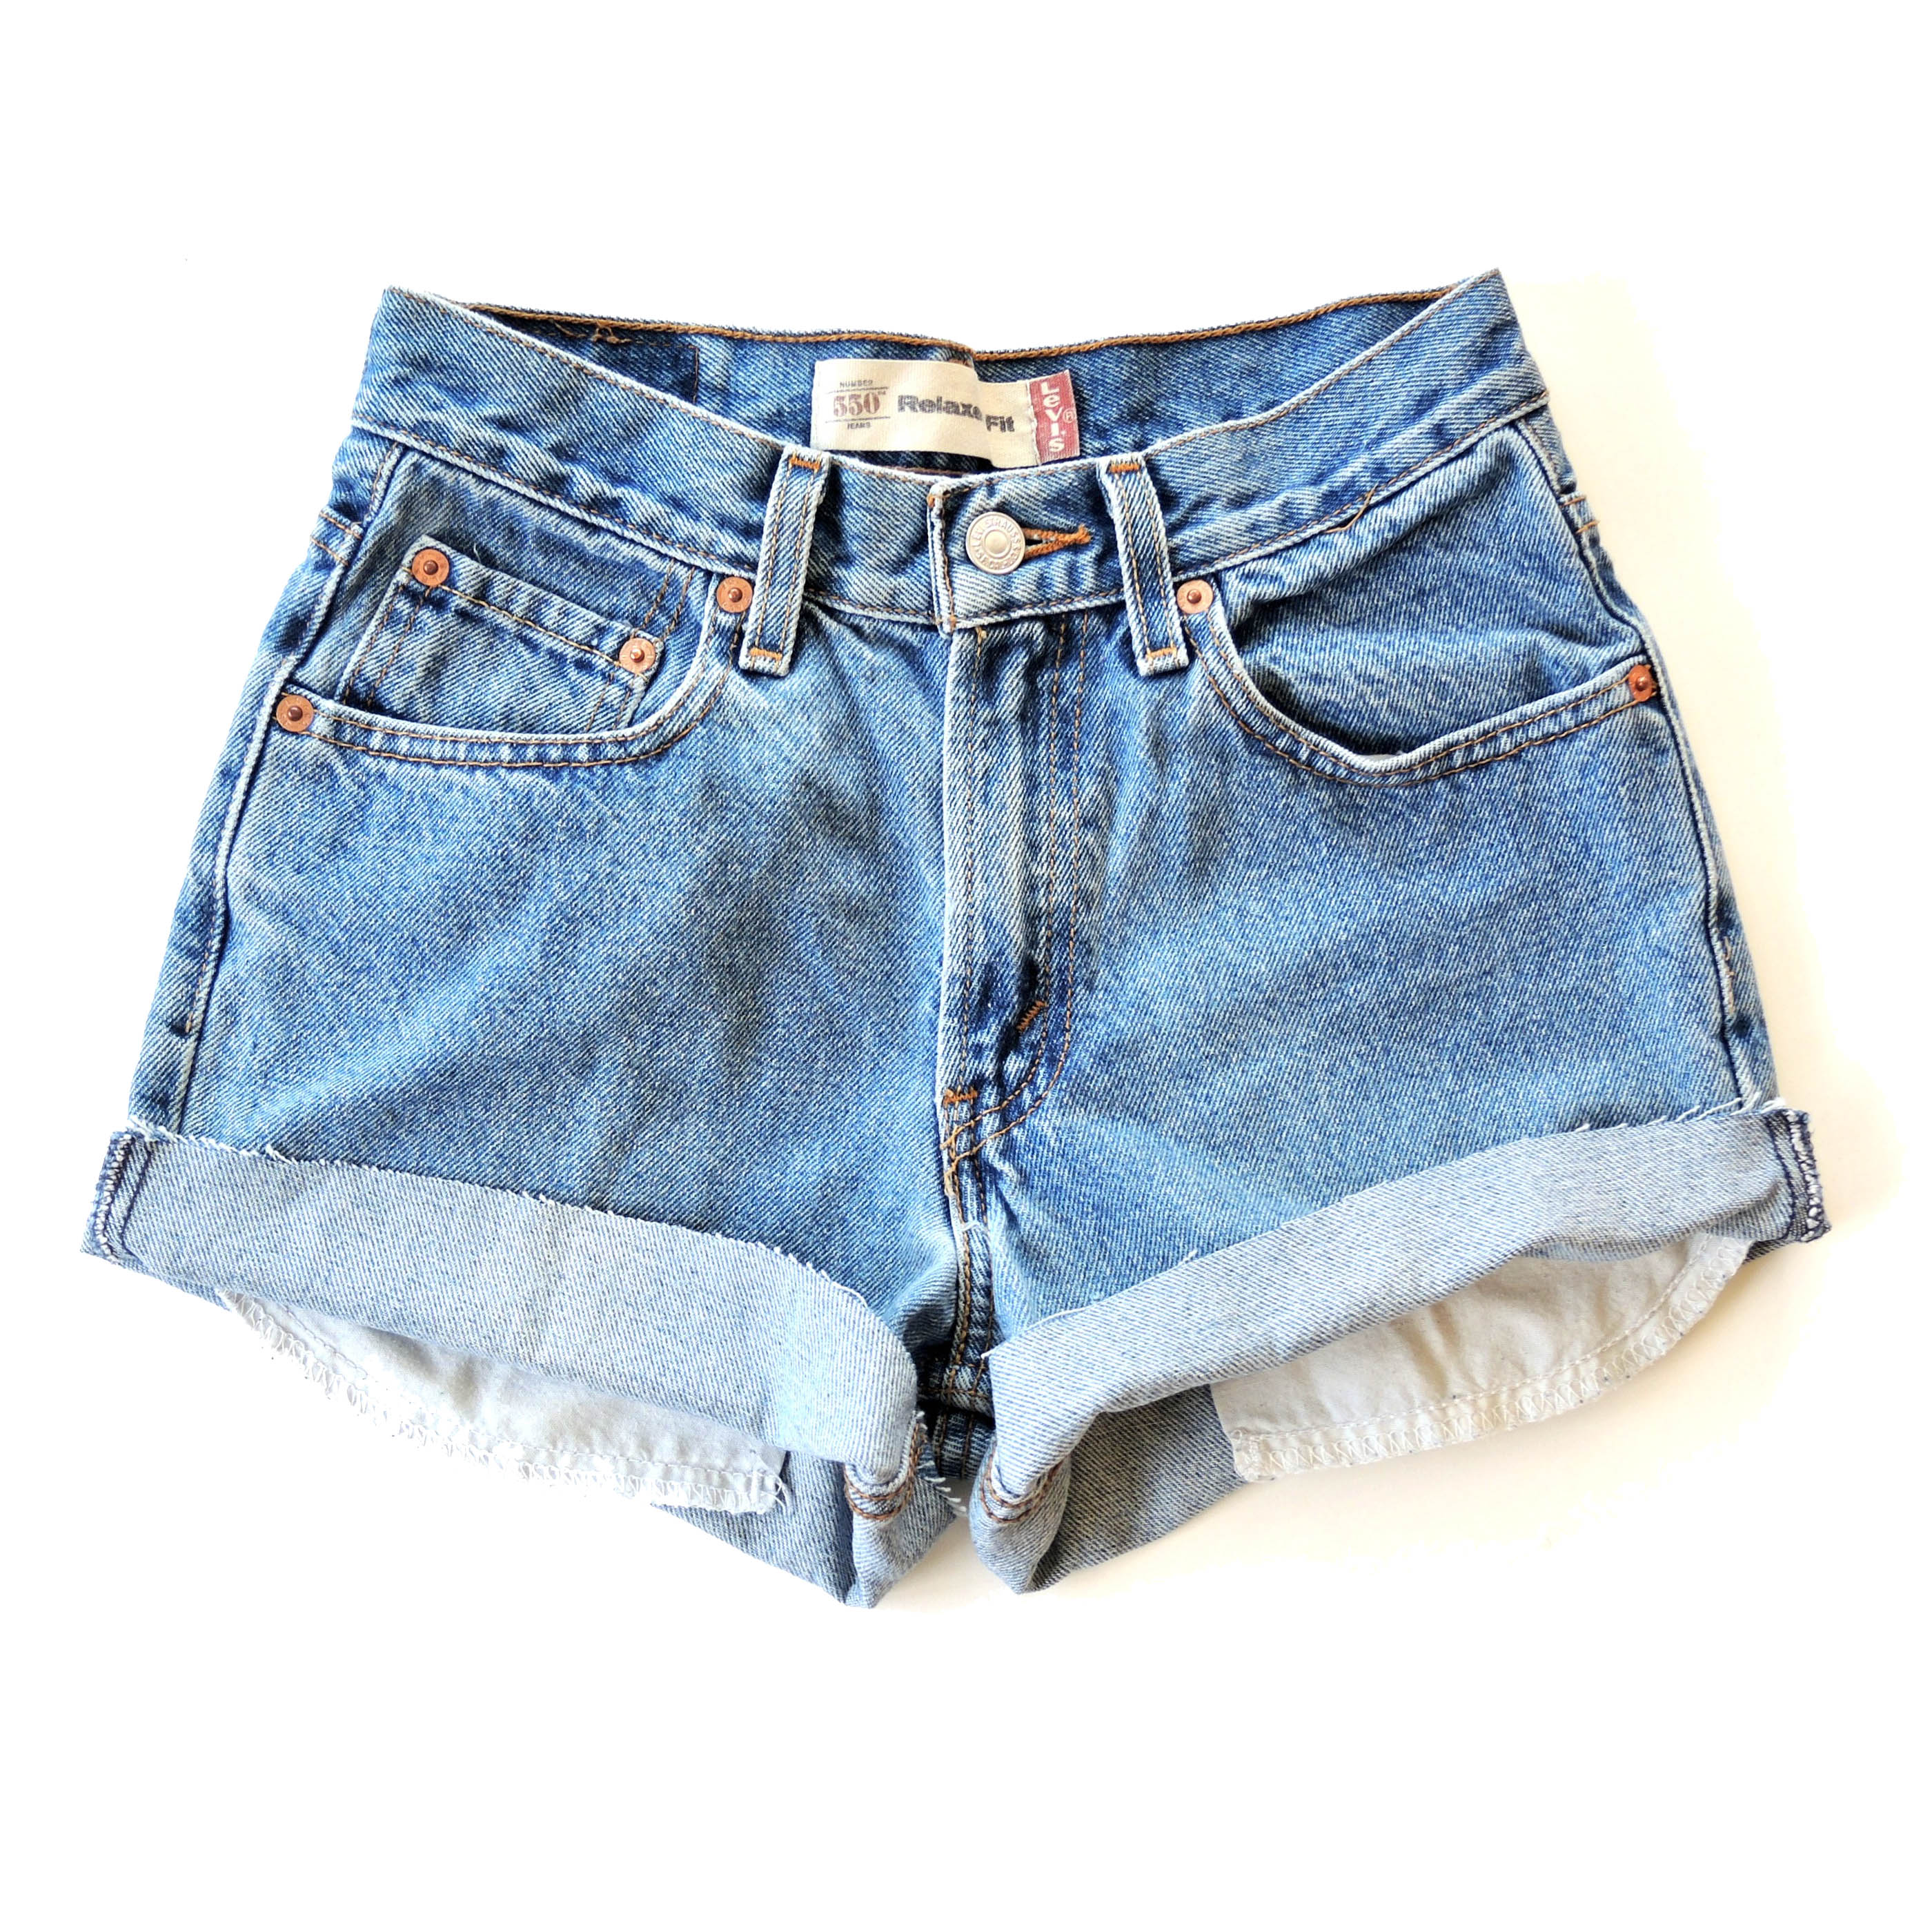 Shop High Waisted Shorts